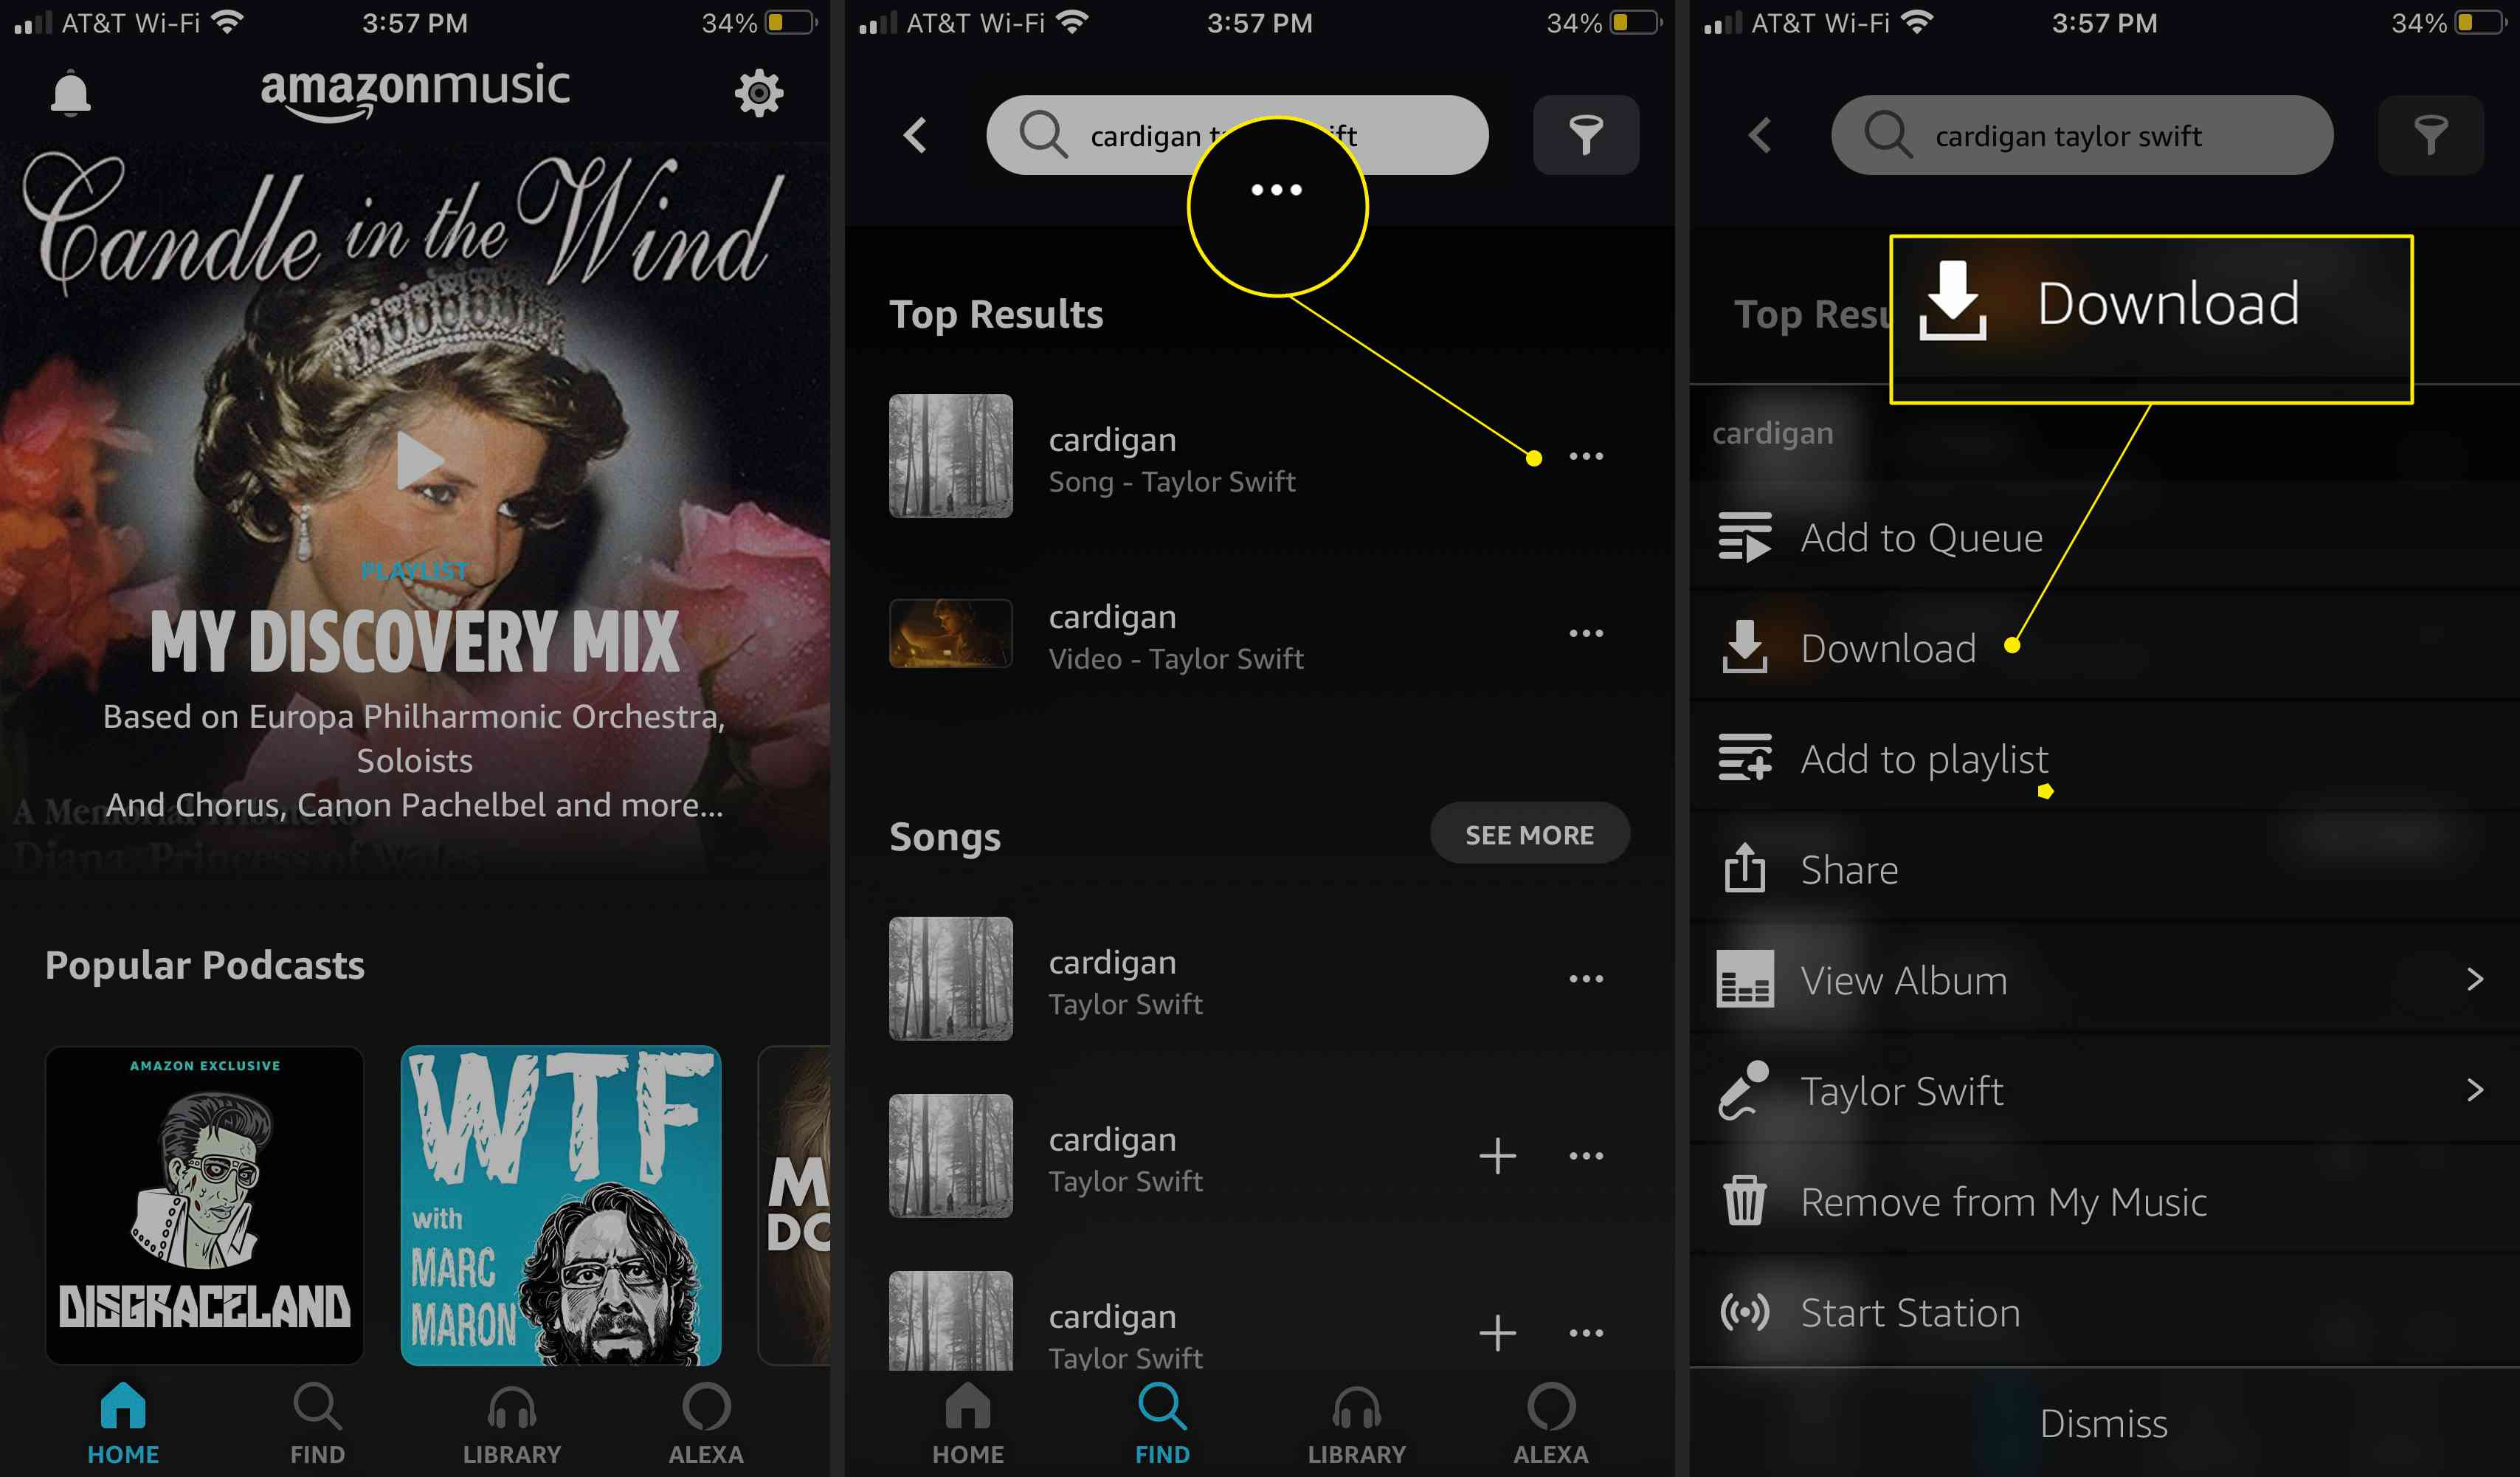 Amazon Music app with More Options (three dots) and Download highlighted